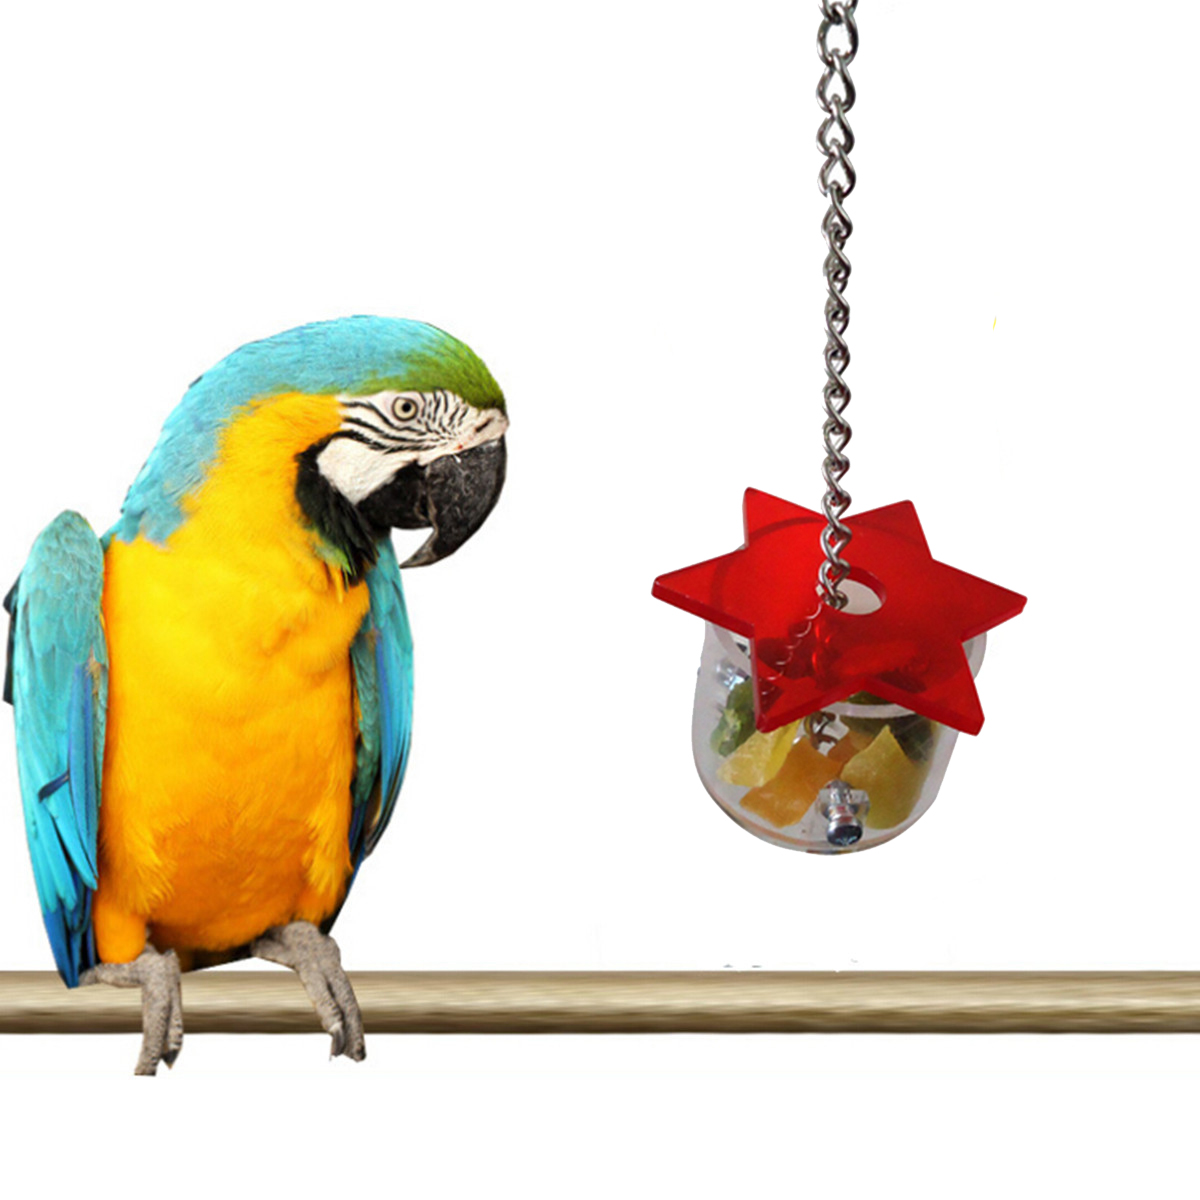 Bird Feeding Box Parrot Pet Bird Hex Star Acrylic Foraging Feeder Box Hanging Cage Swing Chew Toys